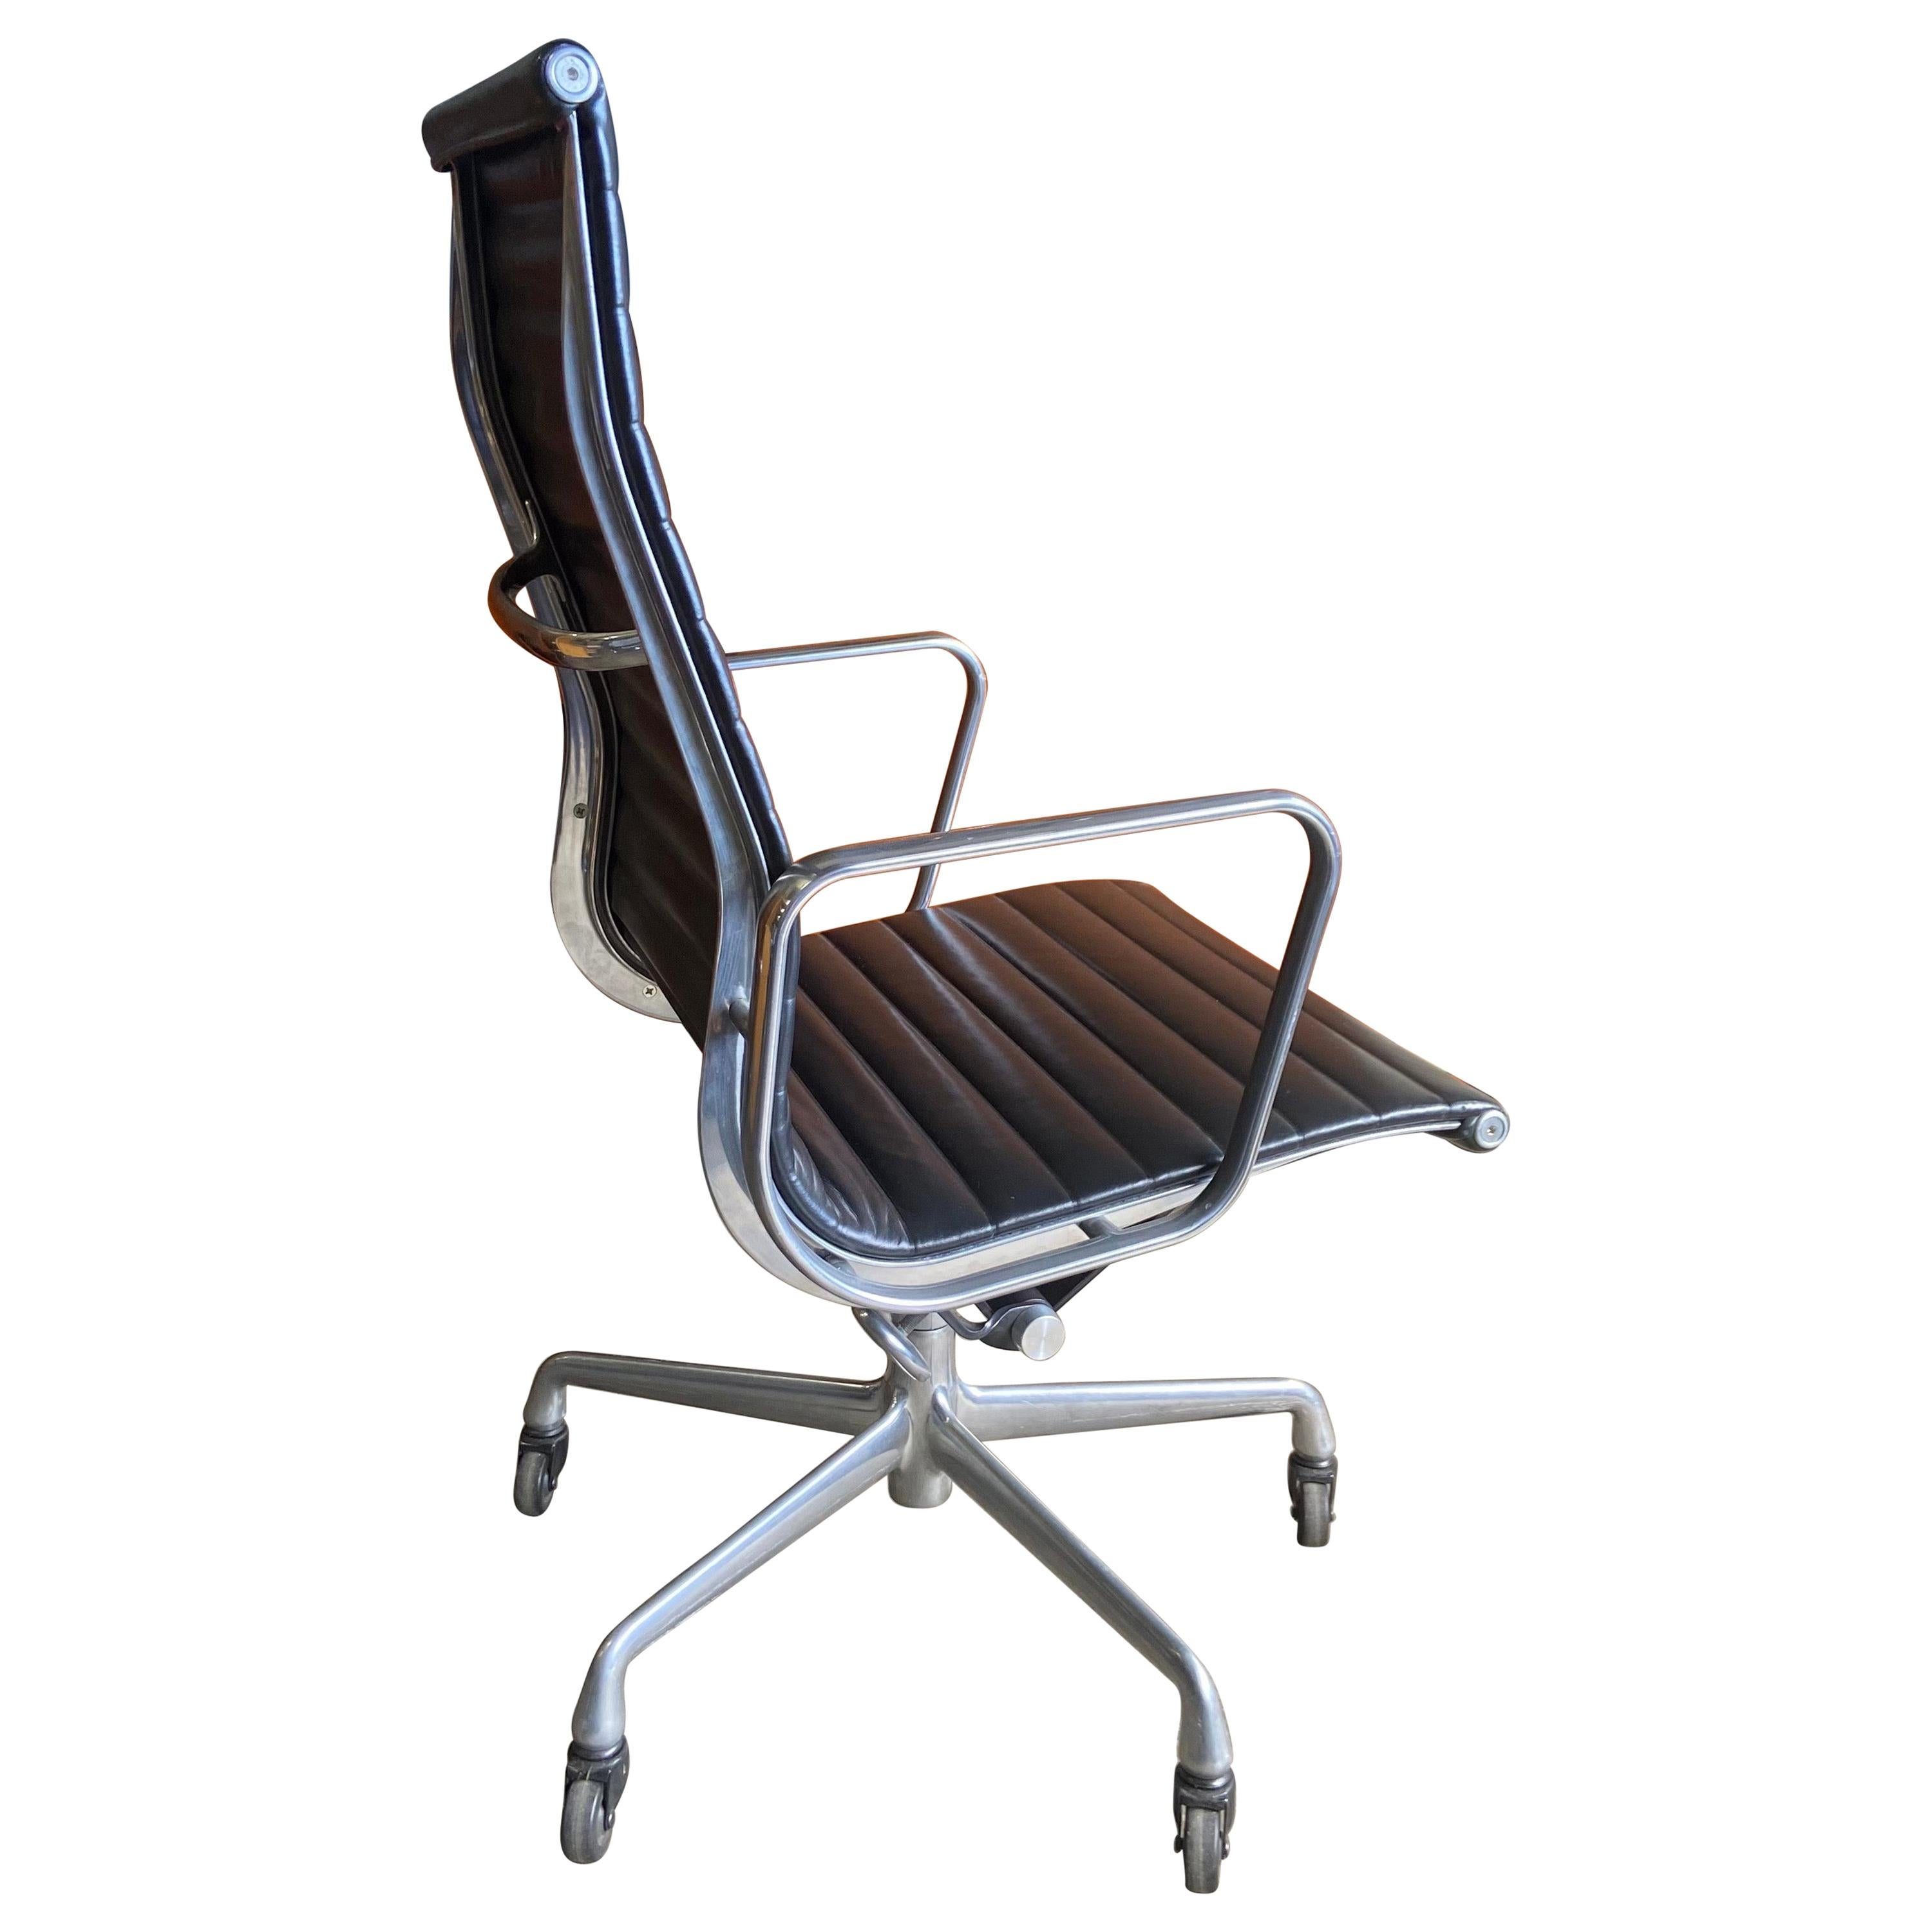 Midcentury Eames for Herman Miller Mid-Century High Back Aluminum Group Chairs